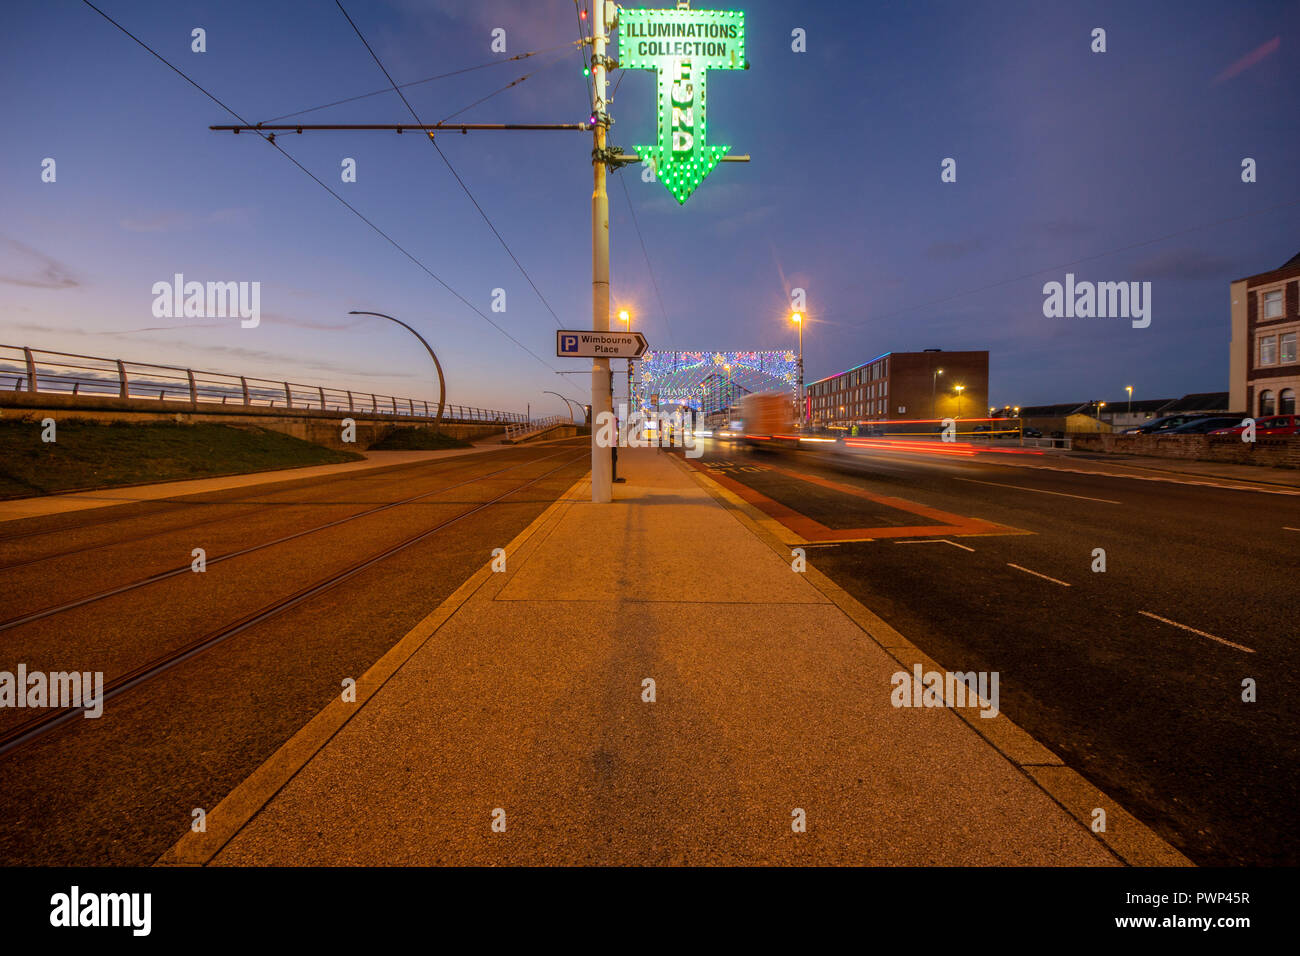 Blackpool, UK. 17th Oct, 2018. Weather news. A beautiful end to the day but with a marked chill in the air. The famous illuminations have struggled in recent years for collections and the midweek traffic lacks the volume of vehicles and visitors to help fund the free show .copyright Credit: gary telford/Alamy Live News - Stock Image